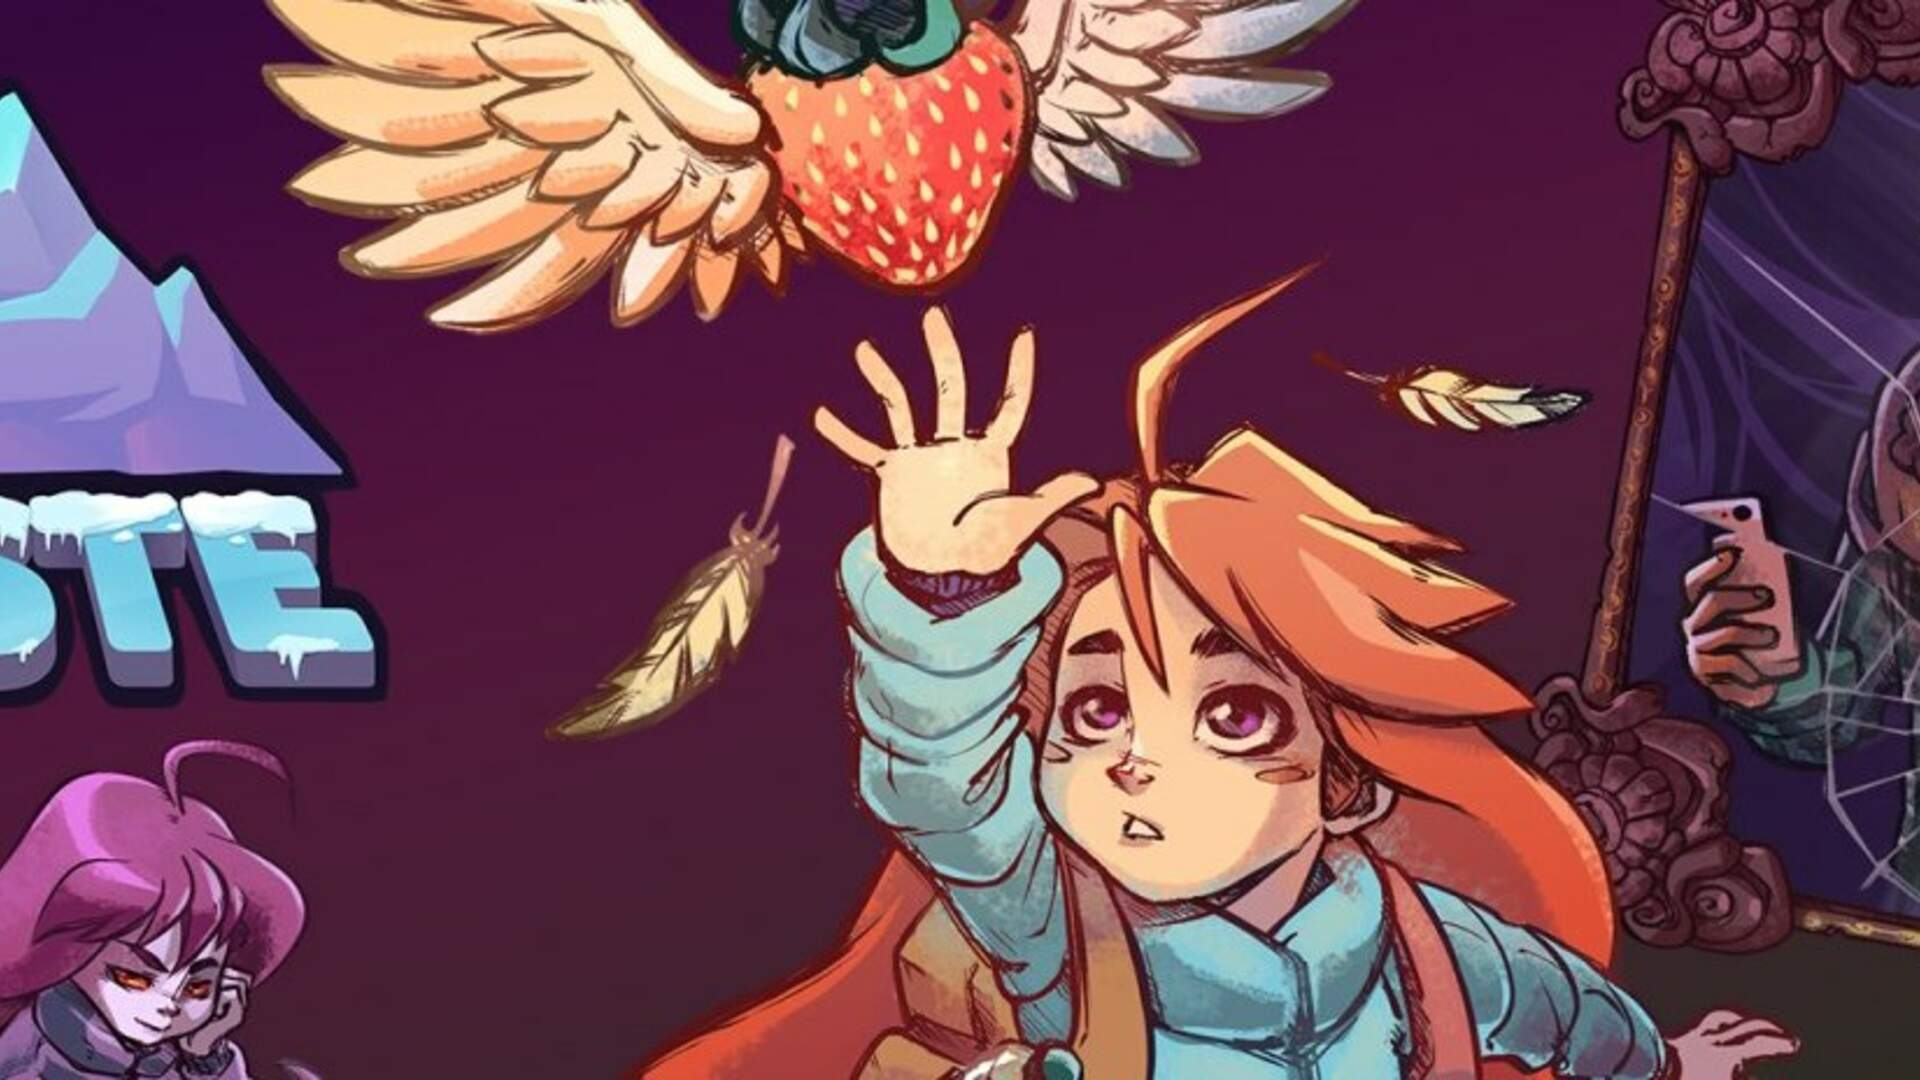 Celeste to Get New Levels in 2019, New Project Teased